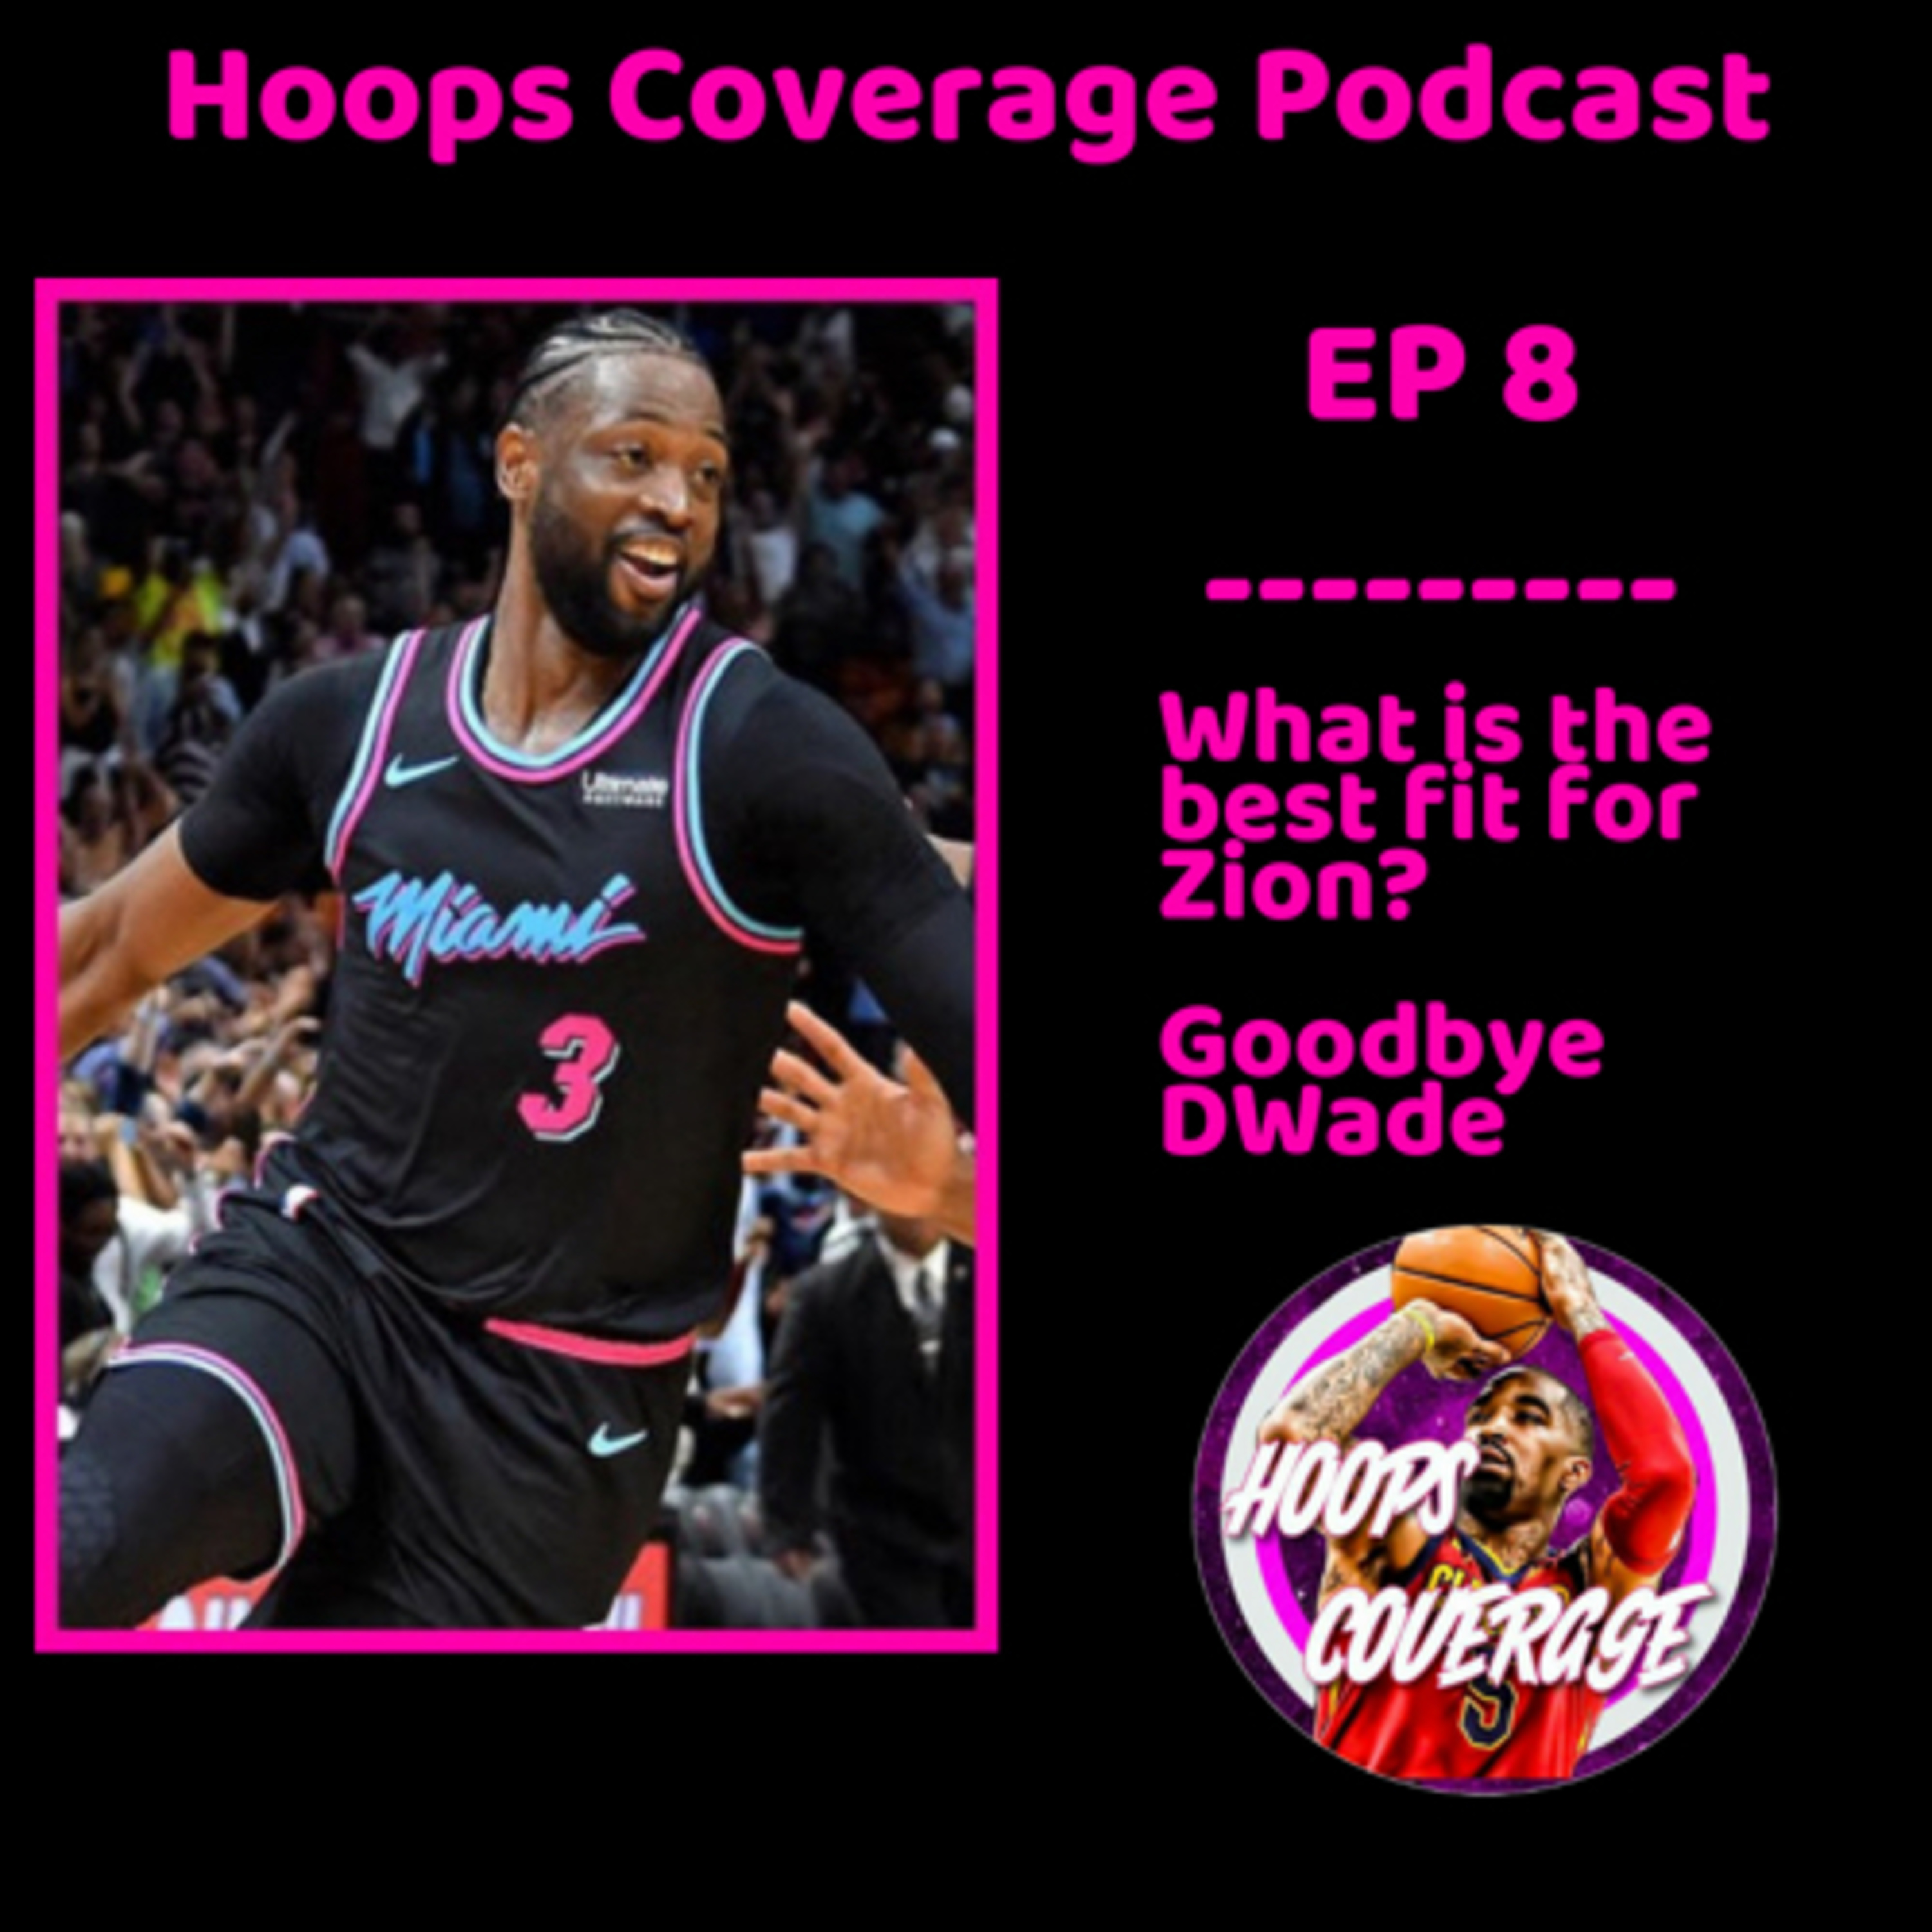 Where does Zion fit the best?  Magic leaves Lakers  Hoops Coverage Podcast EP 8